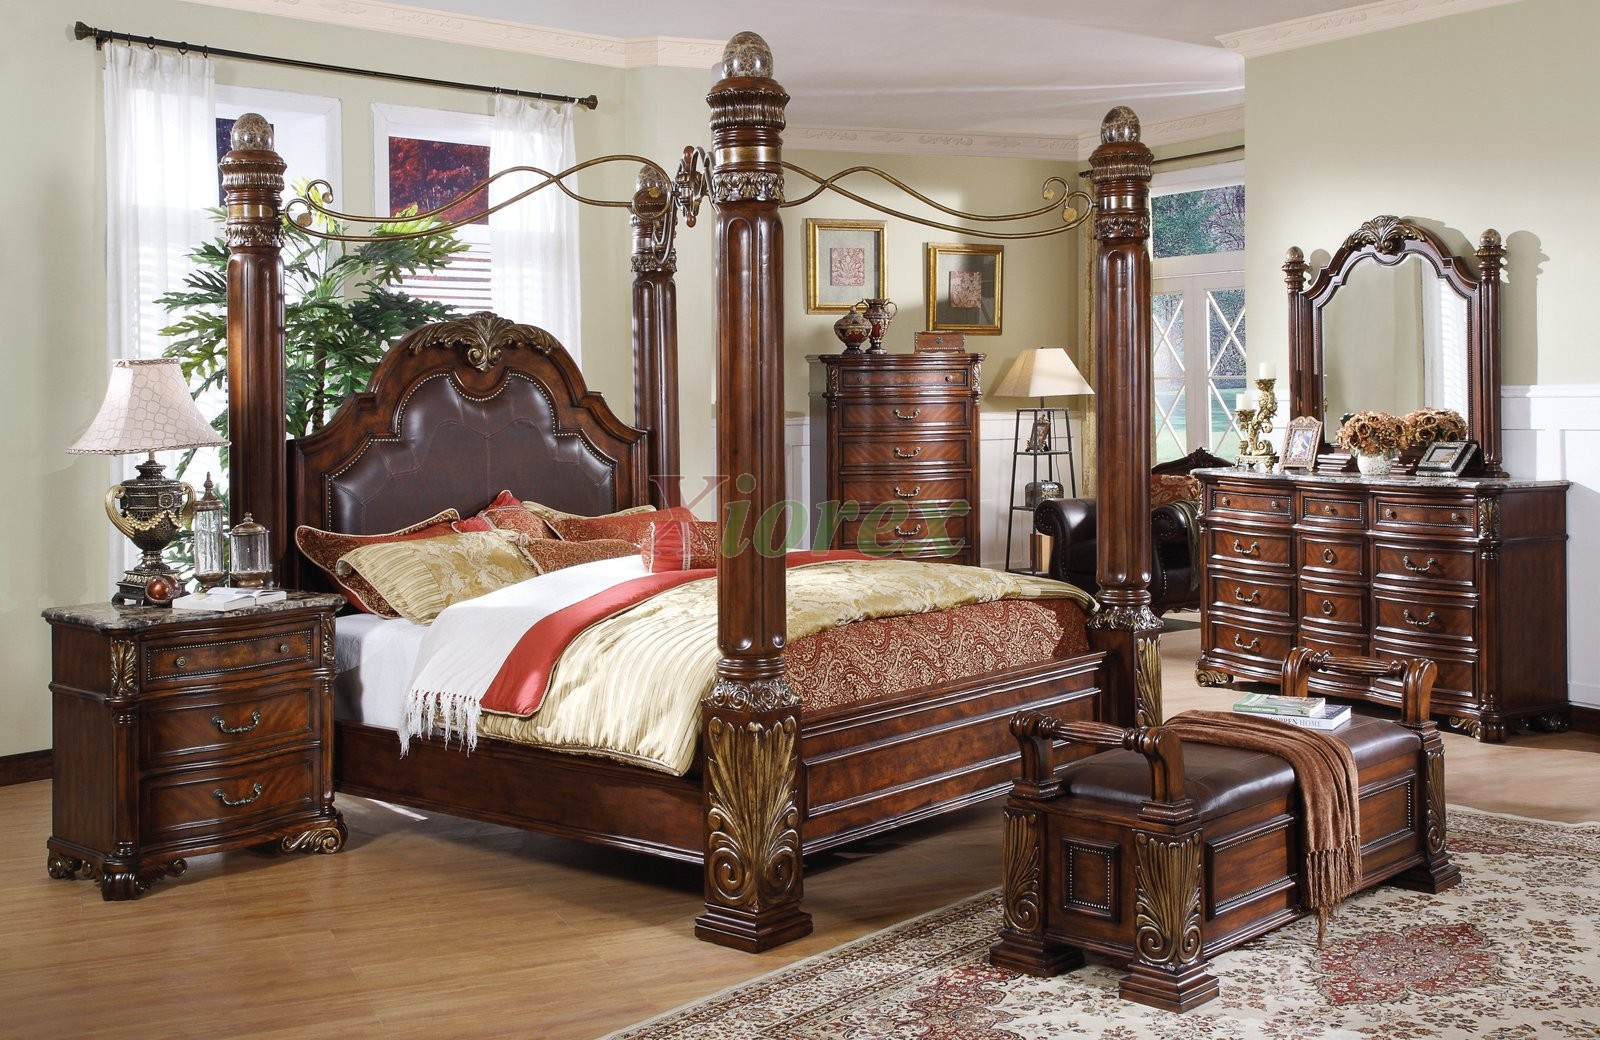 Canopy bed sets bedroom furniture sets w poster canopy for Where to get bedroom furniture